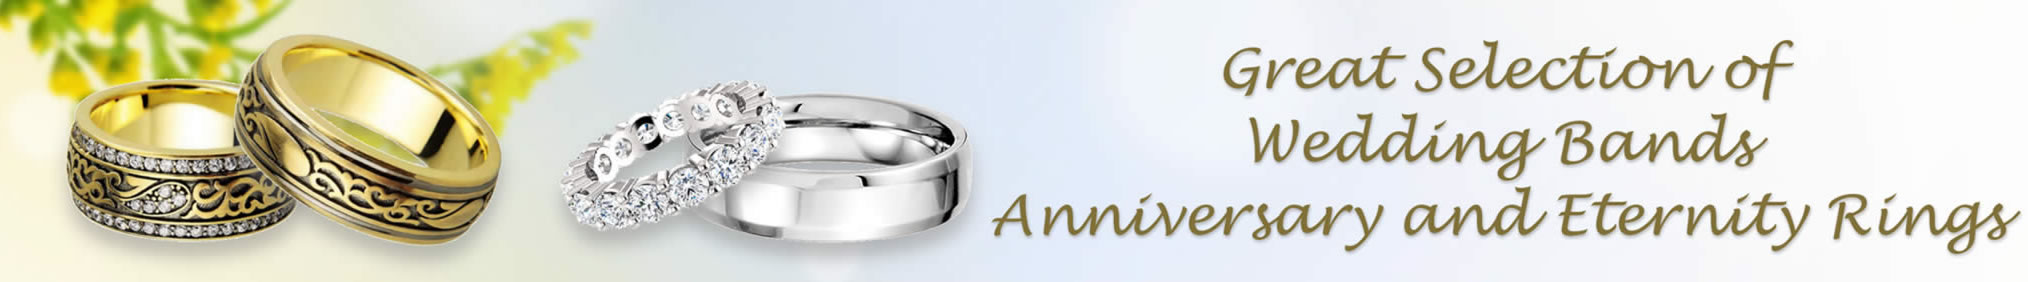 Great Selection of Wedding Bands Anniversary and Eternity Rings